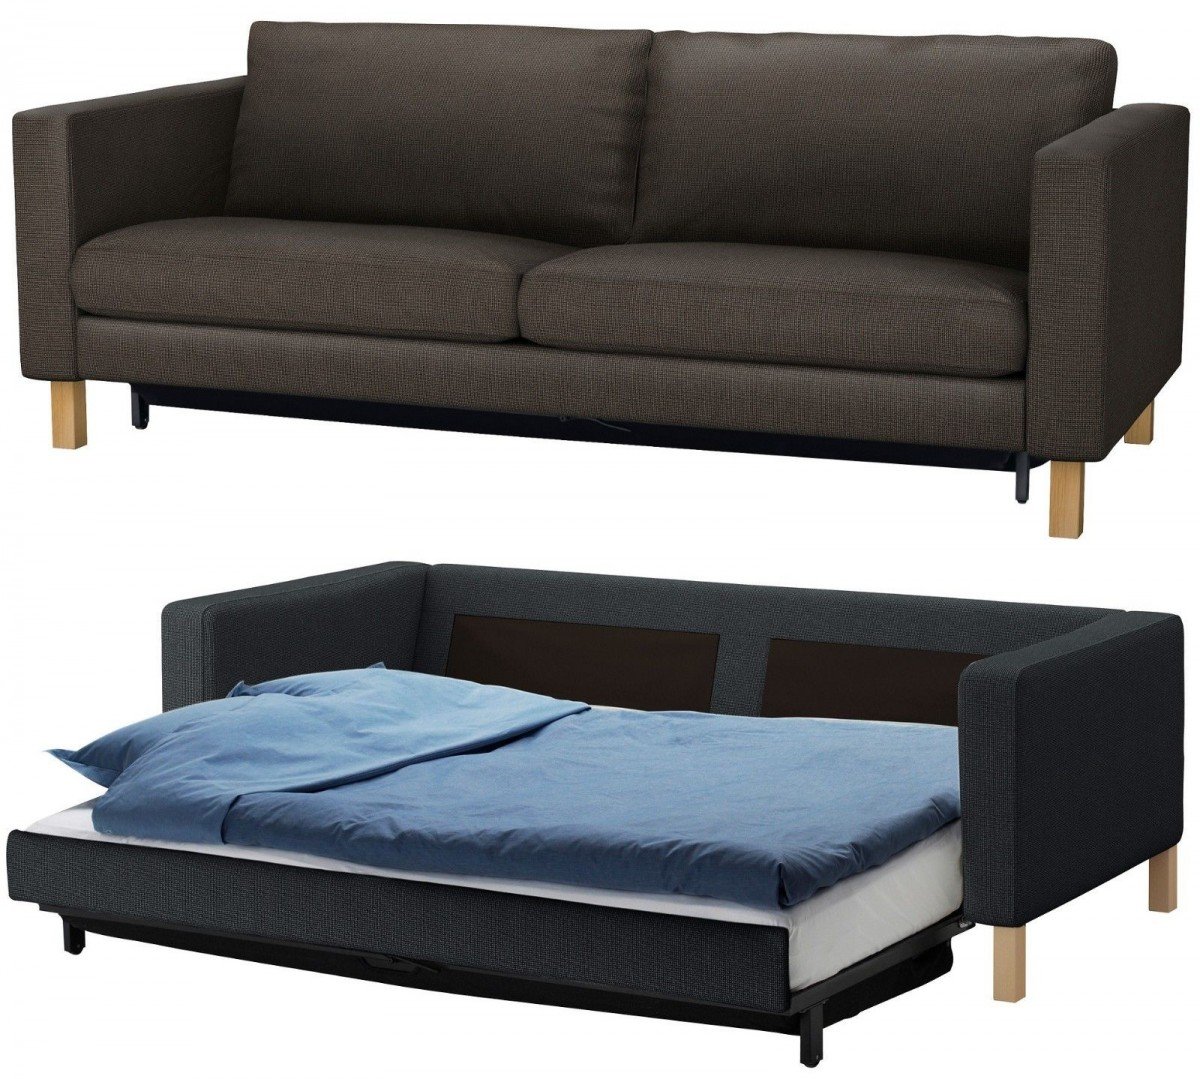 Enhancing a stylish home with sectional sleeper sofa ikea interior exterior ideas Loveseats with console